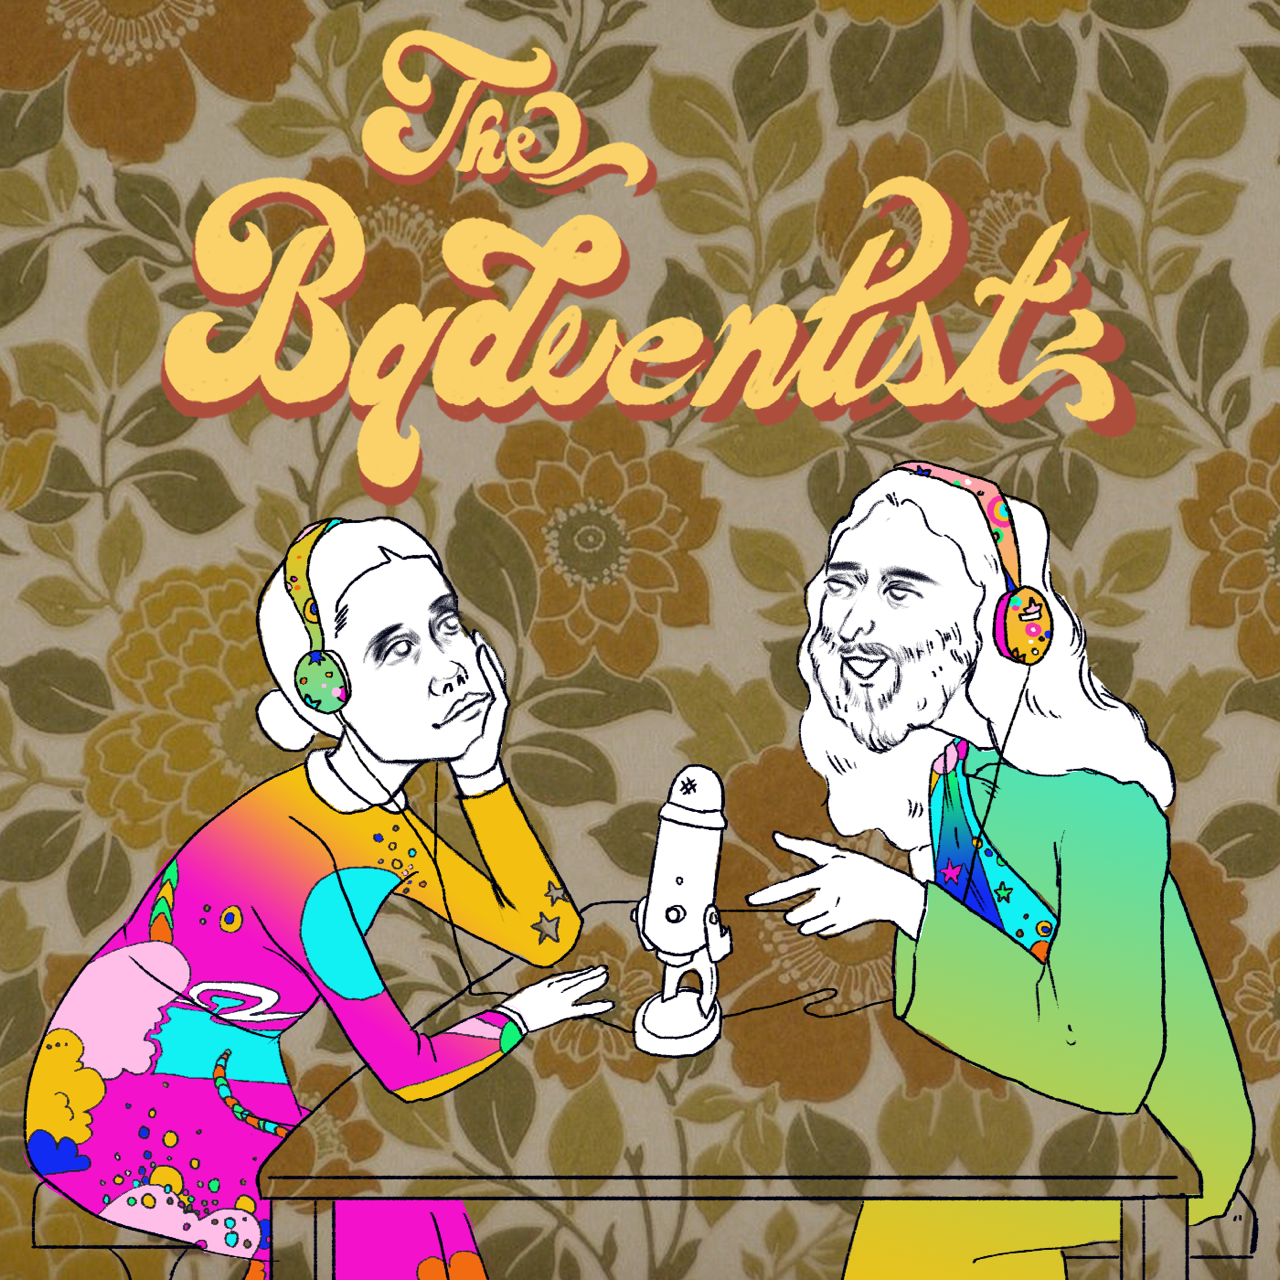 The BadventistPodcast - The Badventist is a podcast on faith and doubt, community and loneliness, orthodoxy and heresy, and how we fit in the in between.